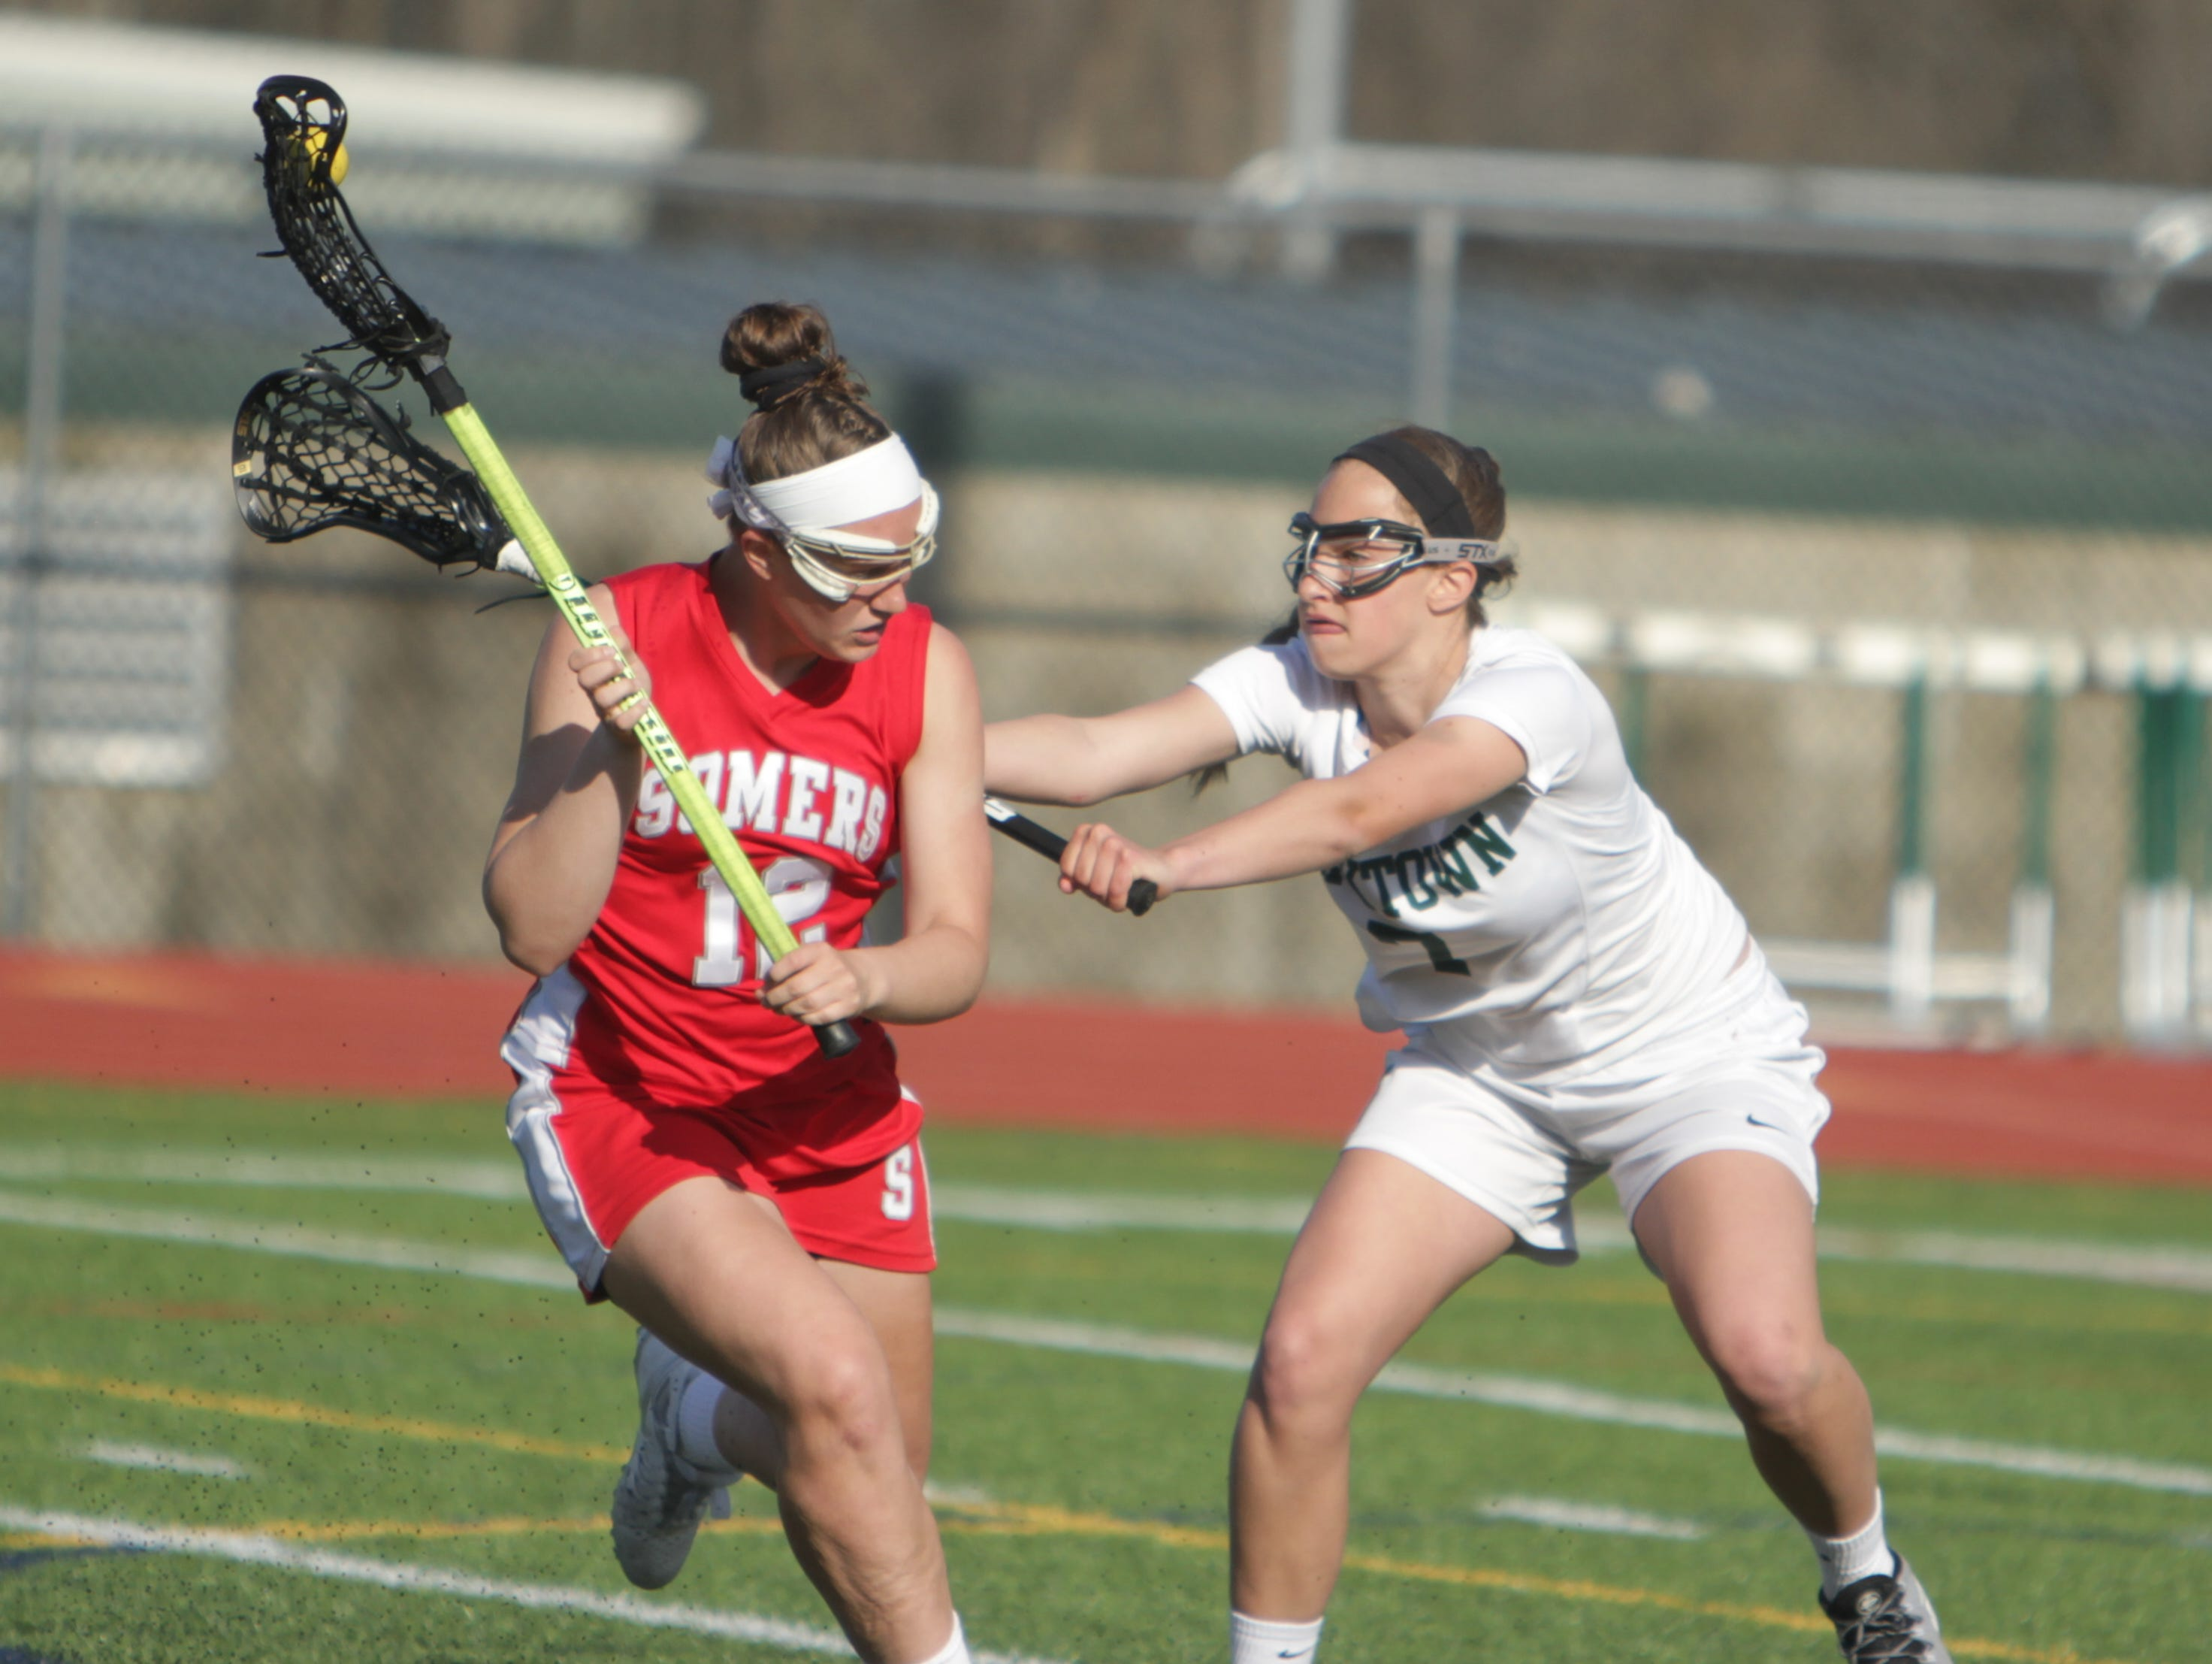 Somers' Livy Rosenzweig is defended by Yorktown's Carli Mager during a Section 1 girls lacrosse game between Yorktown and Somers at Yorktown High School on Thursday, April 21st, 2016. Somers won 11-10.